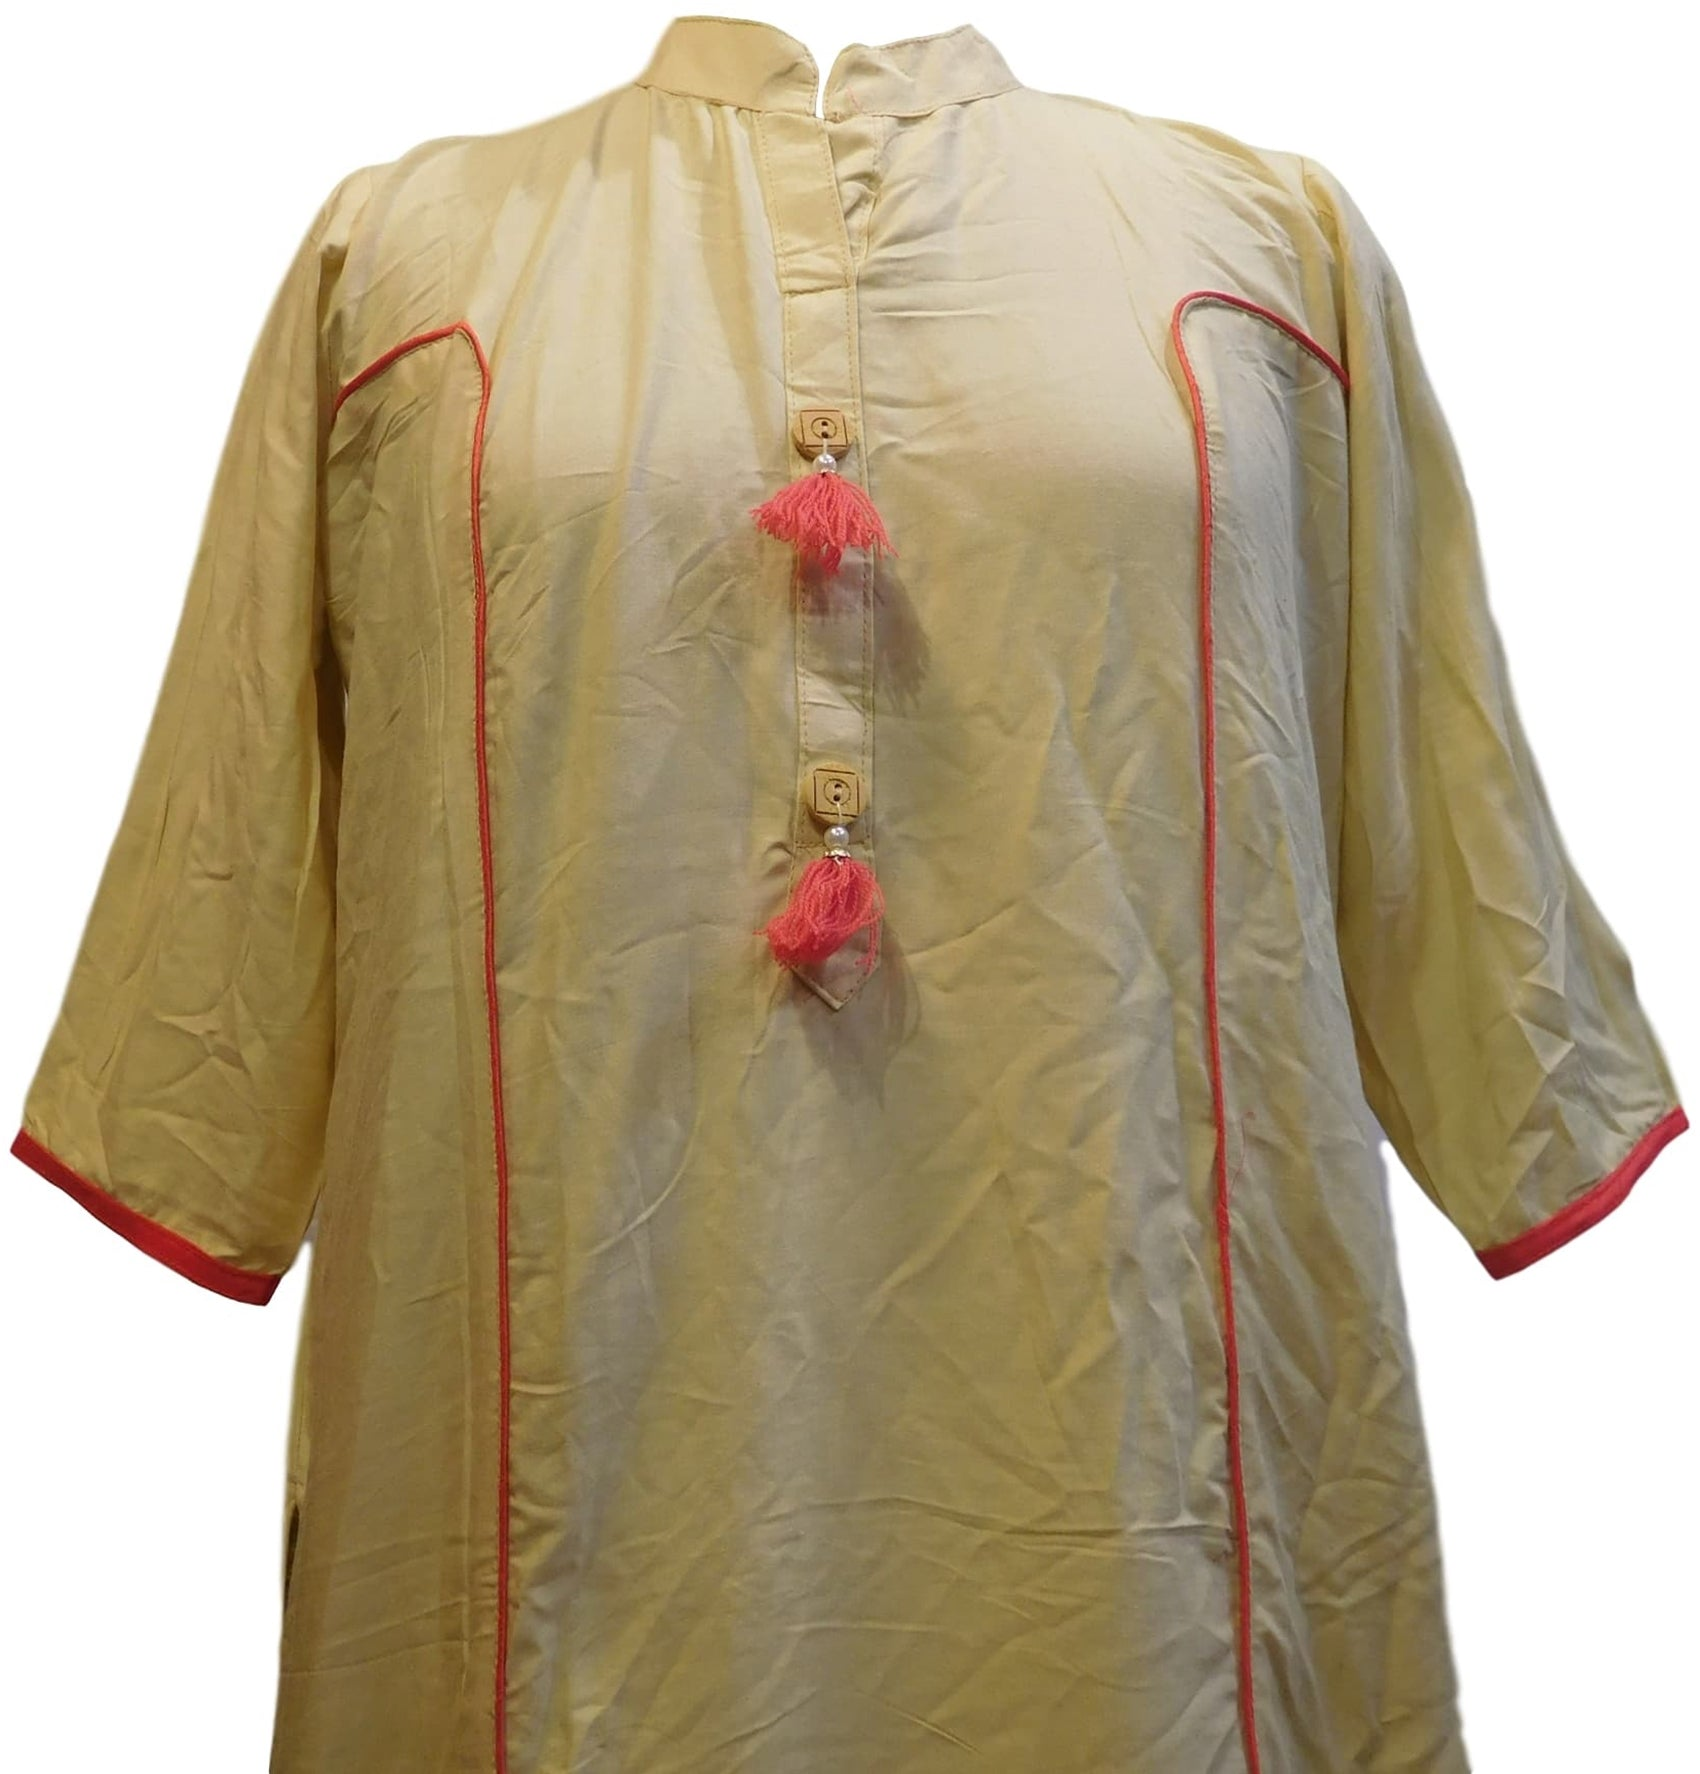 Beige Designer Cotton (Rayon) Solid Colour Kurti Kurta With Pink Pipin